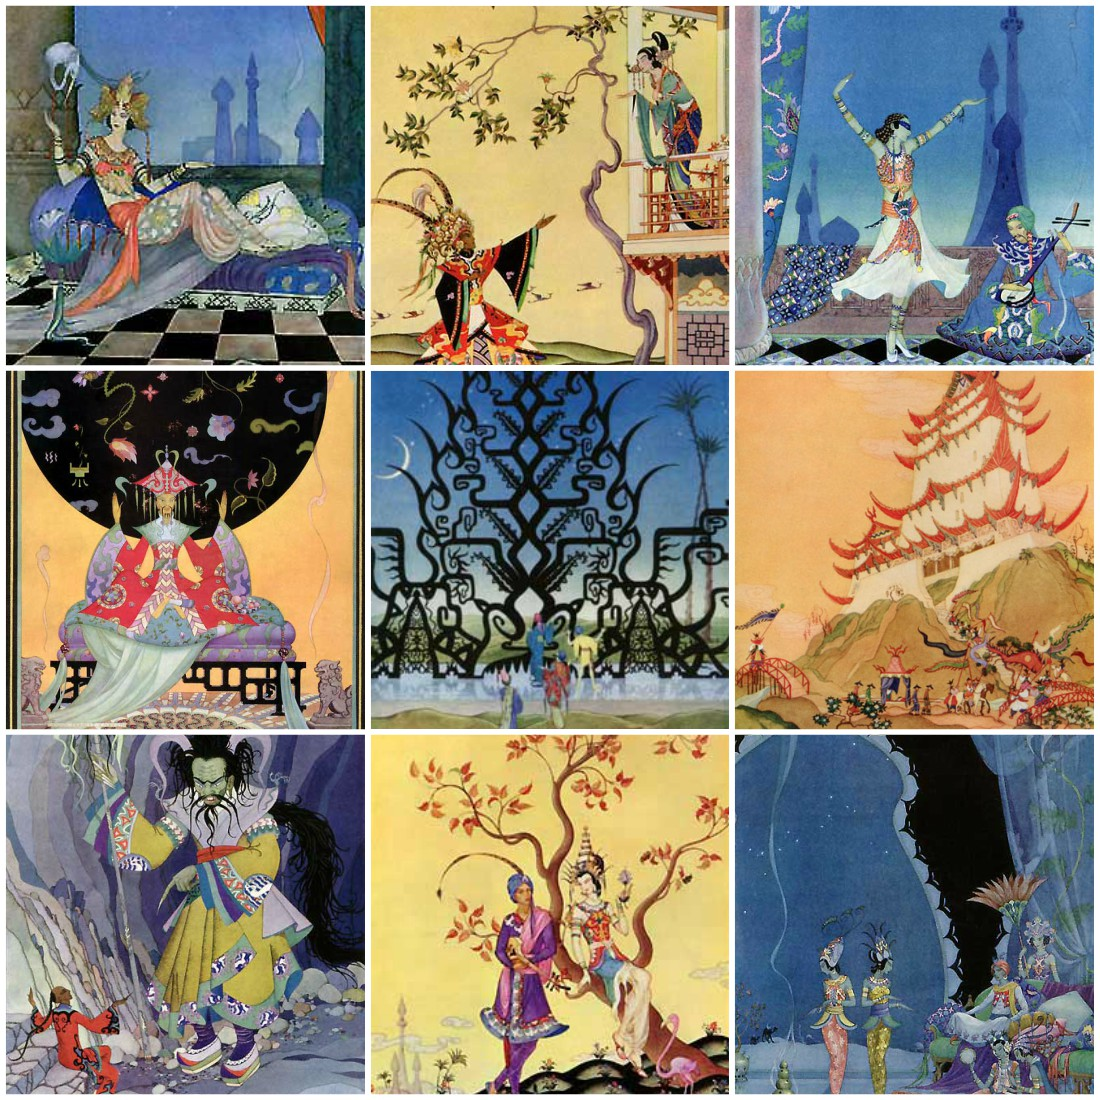 Illustrations by Virginia Frances Sterrett